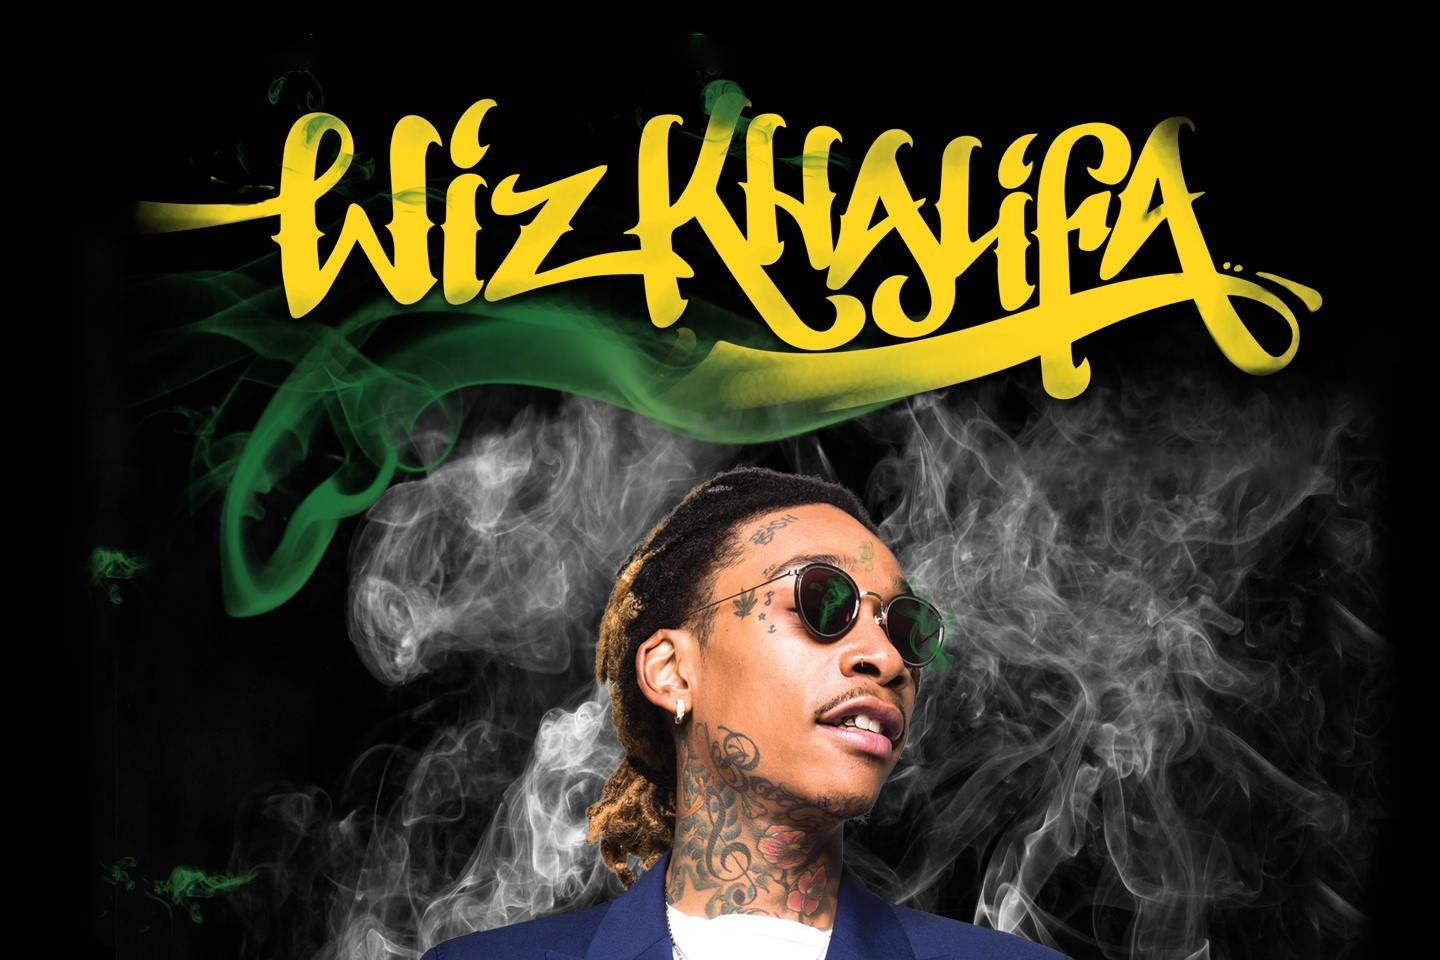 Wiz Khalifa Tour 2020 Wiz Khalifa Tickets | Wiz Khalifa Tour Dates 2019 and Concert